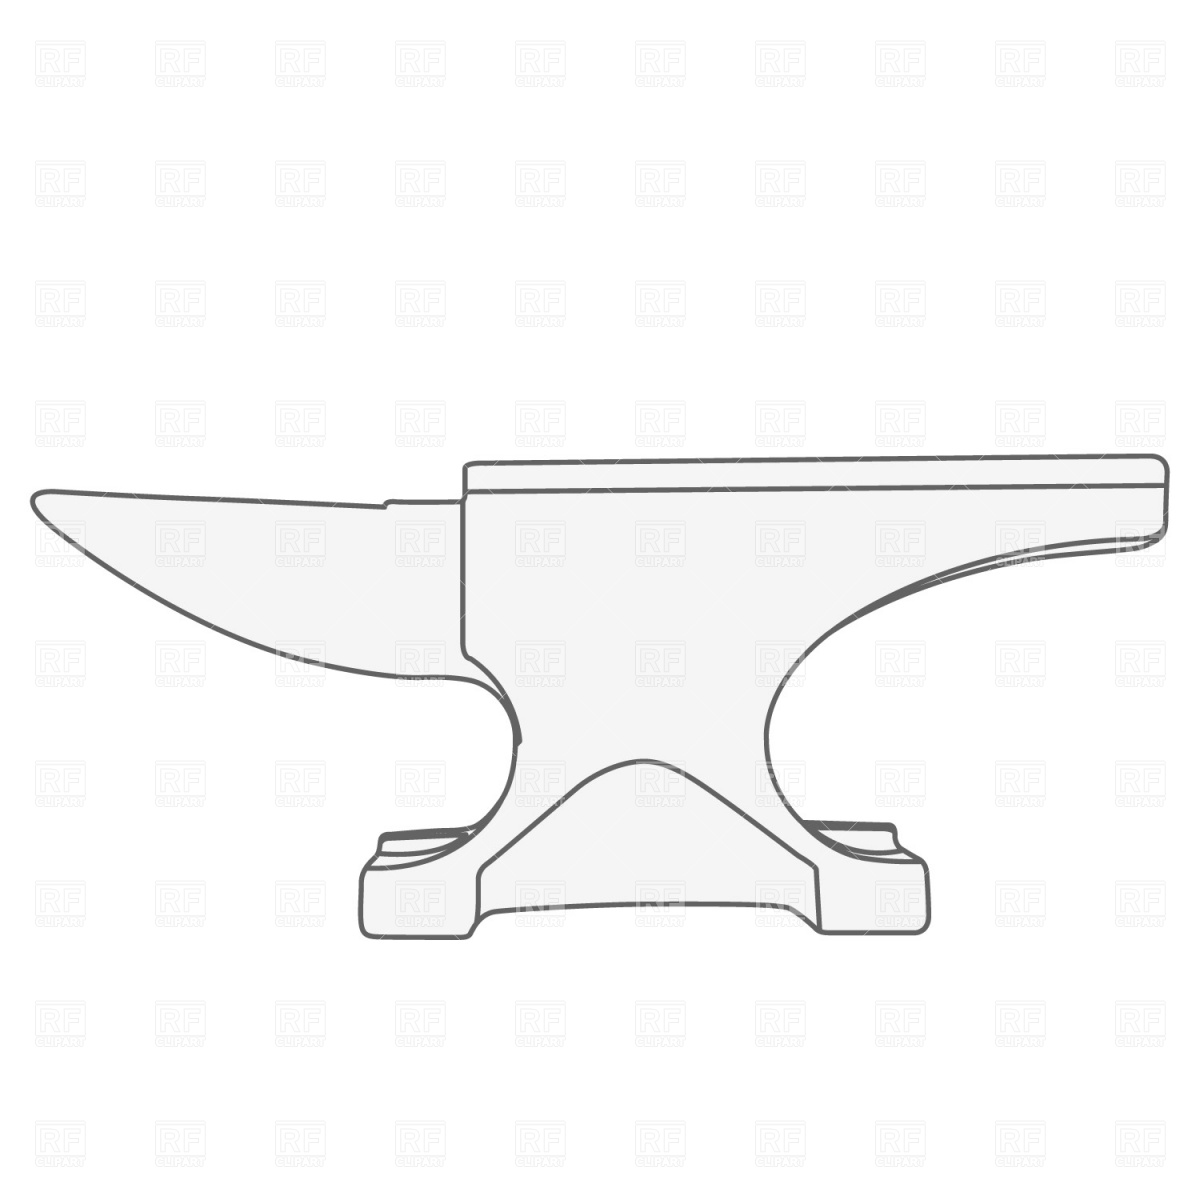 Farrier's Anvil Vector Image #469.